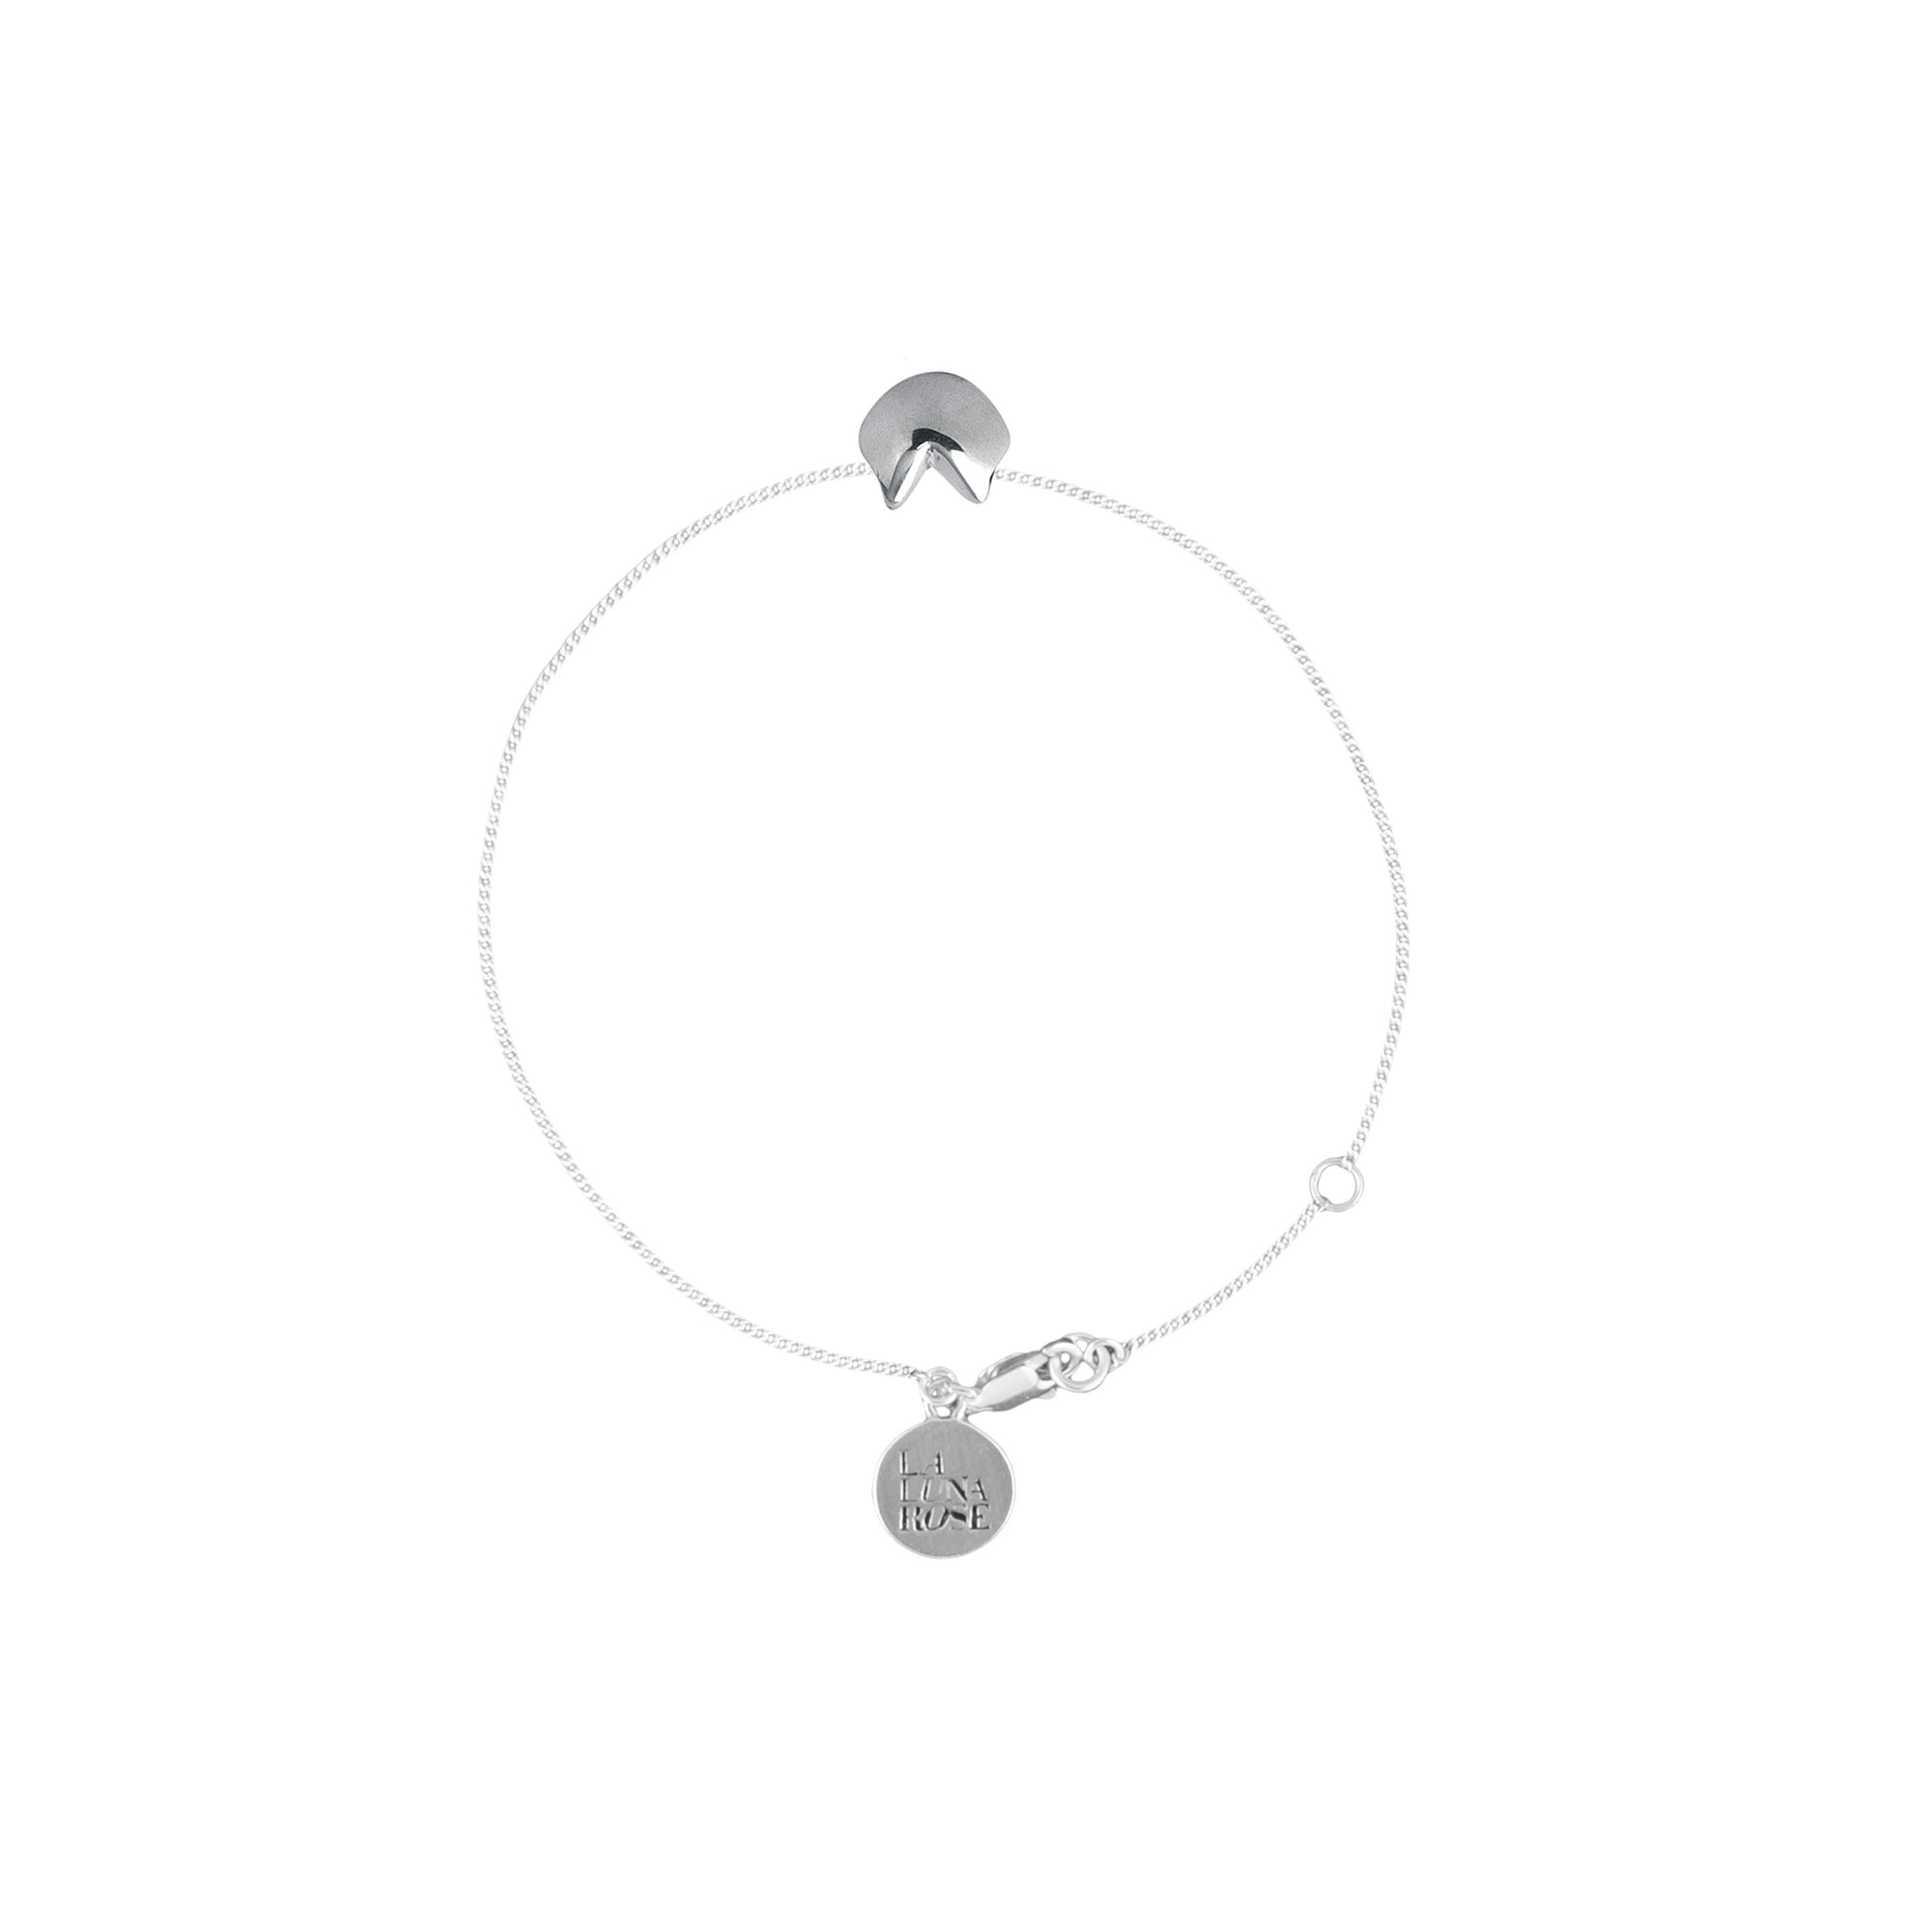 Awestruck in luck Bracelet (Silver)